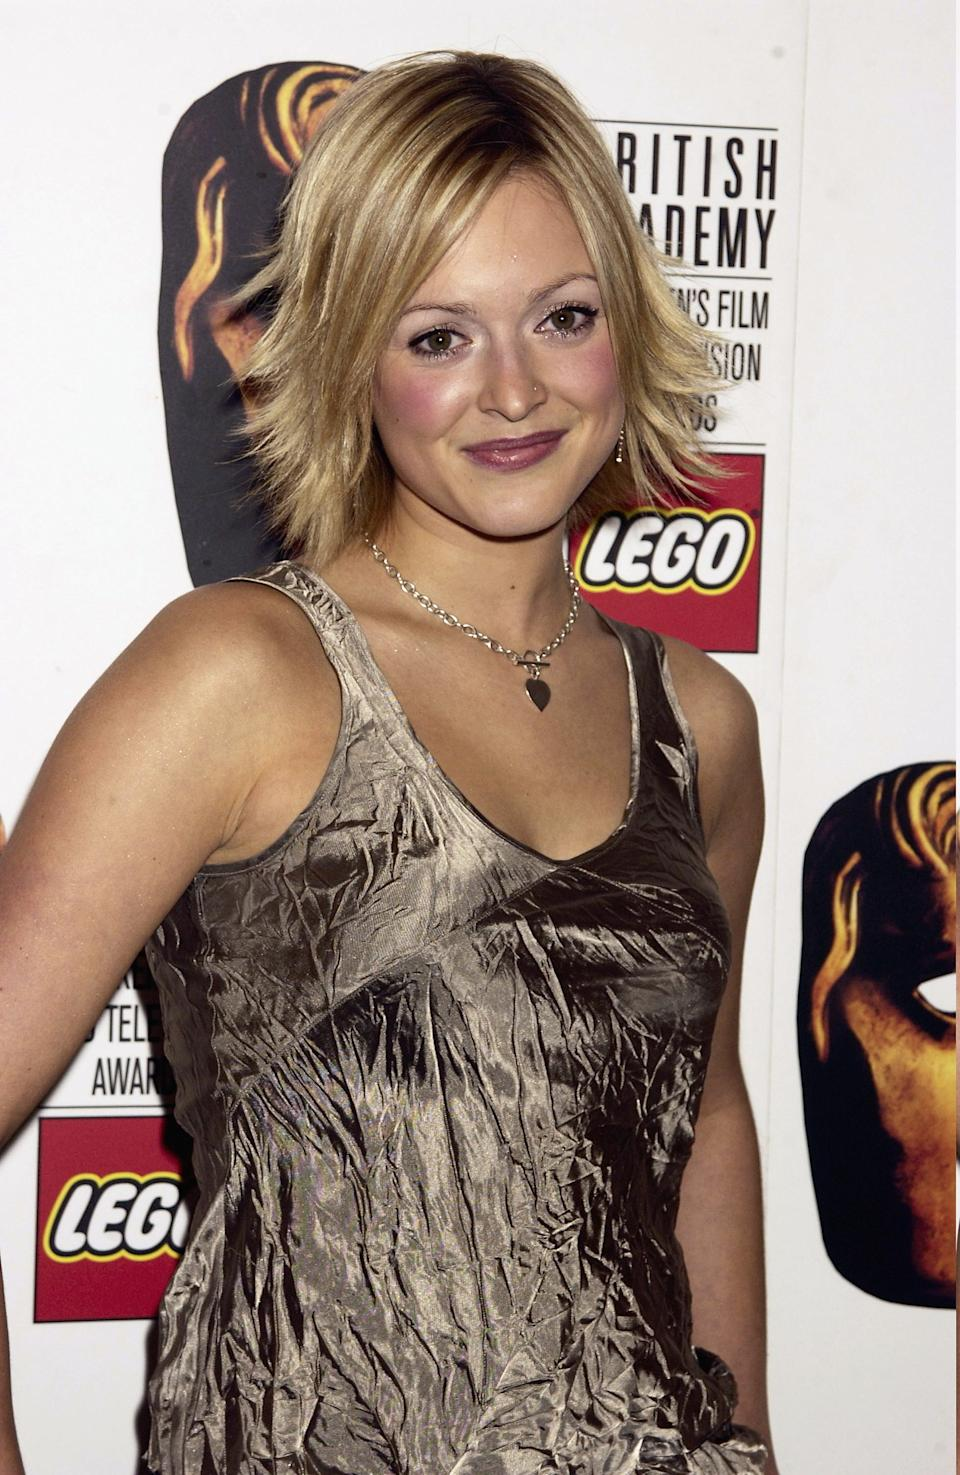 Fearne Cotton poses in the press room at The BAFTA Childrens Awards 2002 sponsored by Lego on November 24th, 2002 at the Hilton Hotel in London. (Photo by Dave Bennett/Getty Images)